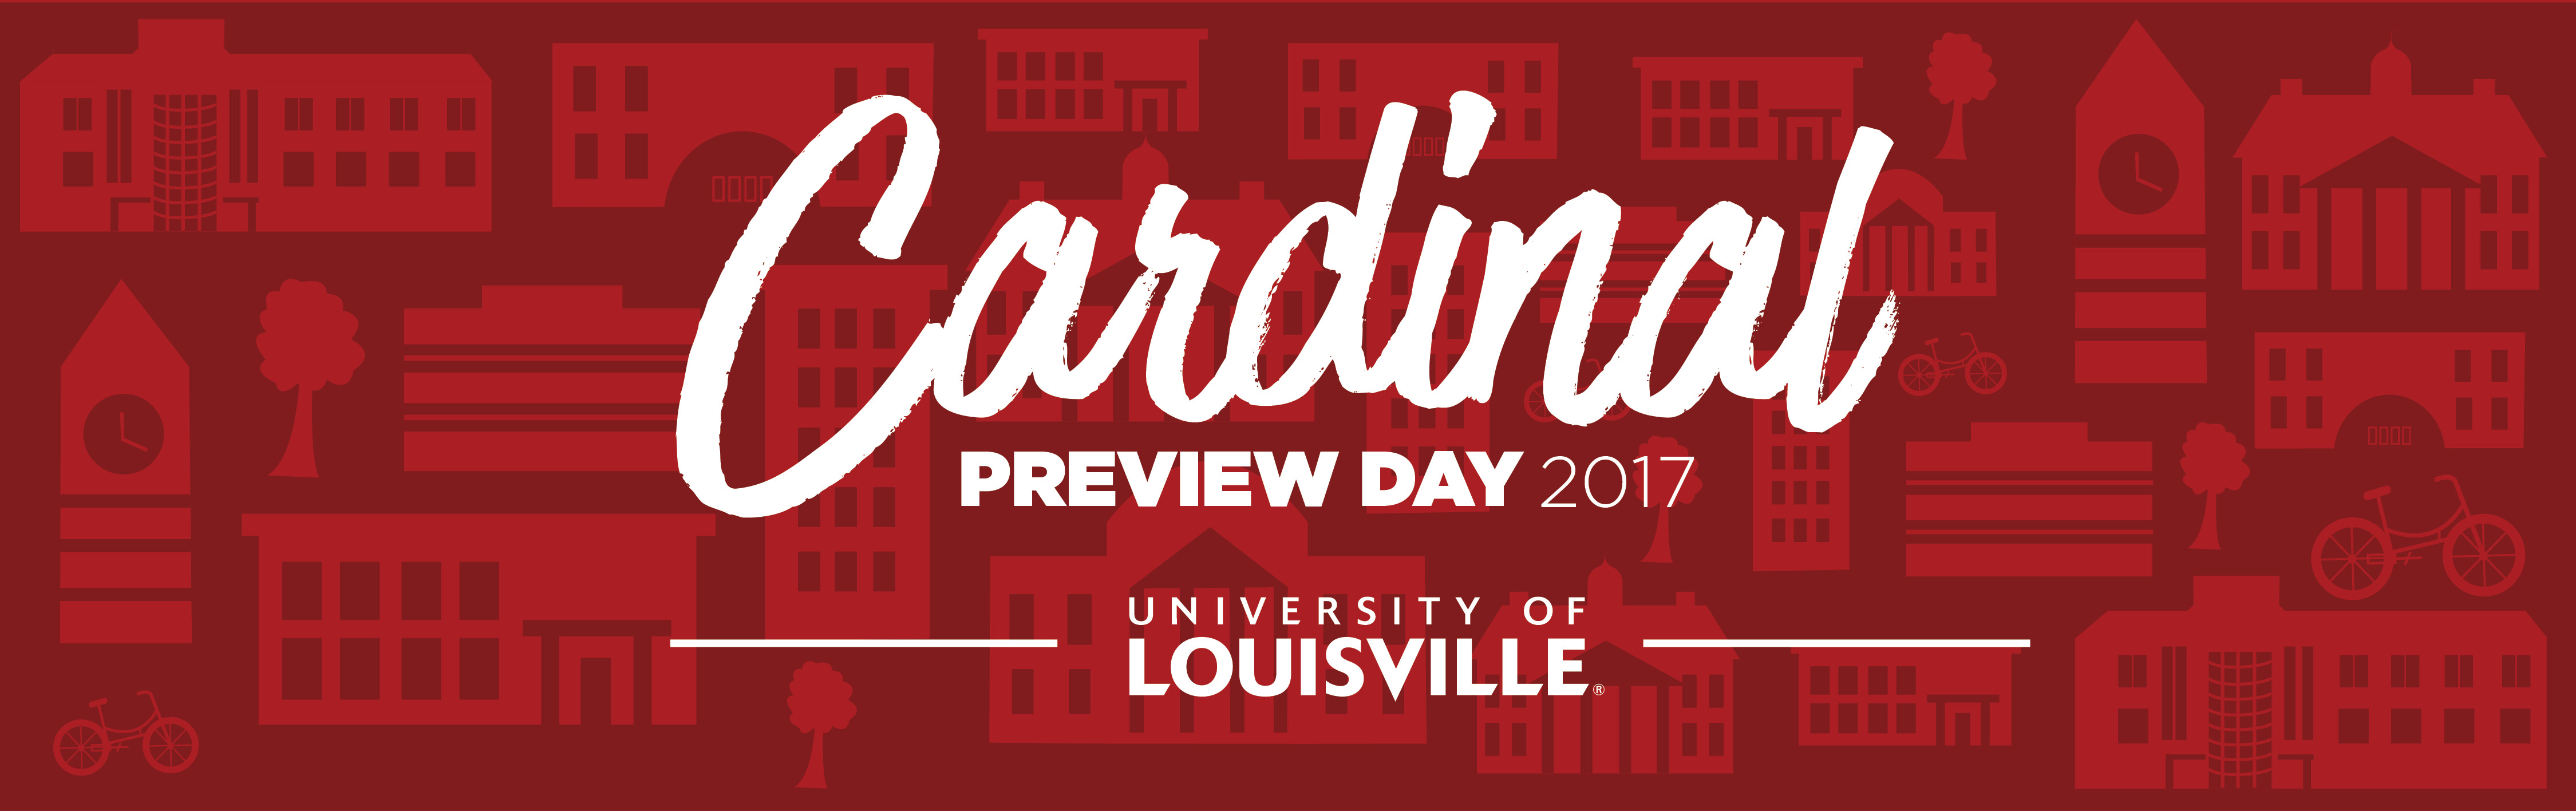 Cardinal Preview Day 2017